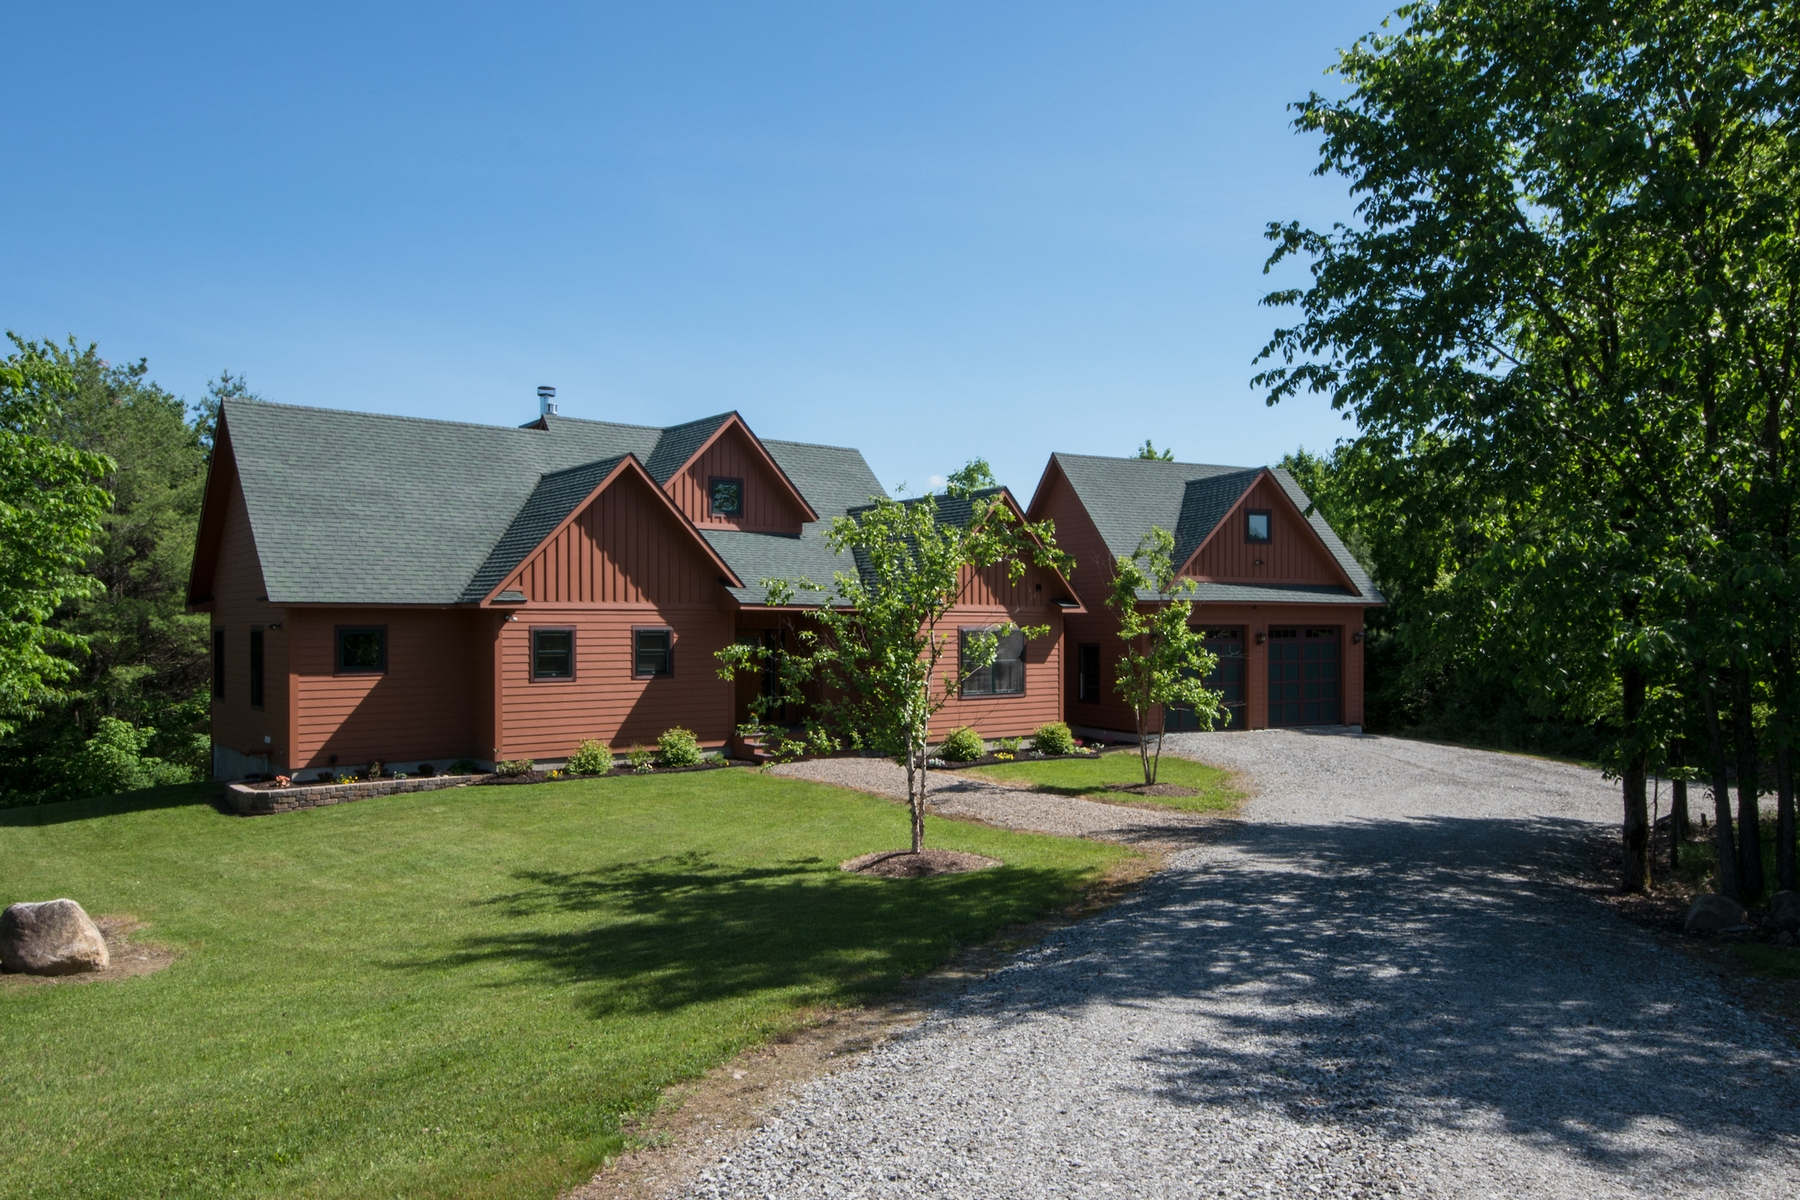 Villa per Vendita alle ore Custom Adirondack Country Retreat 498 Stickney Bridge Rd, Jay, New York, 12941 Stati Uniti